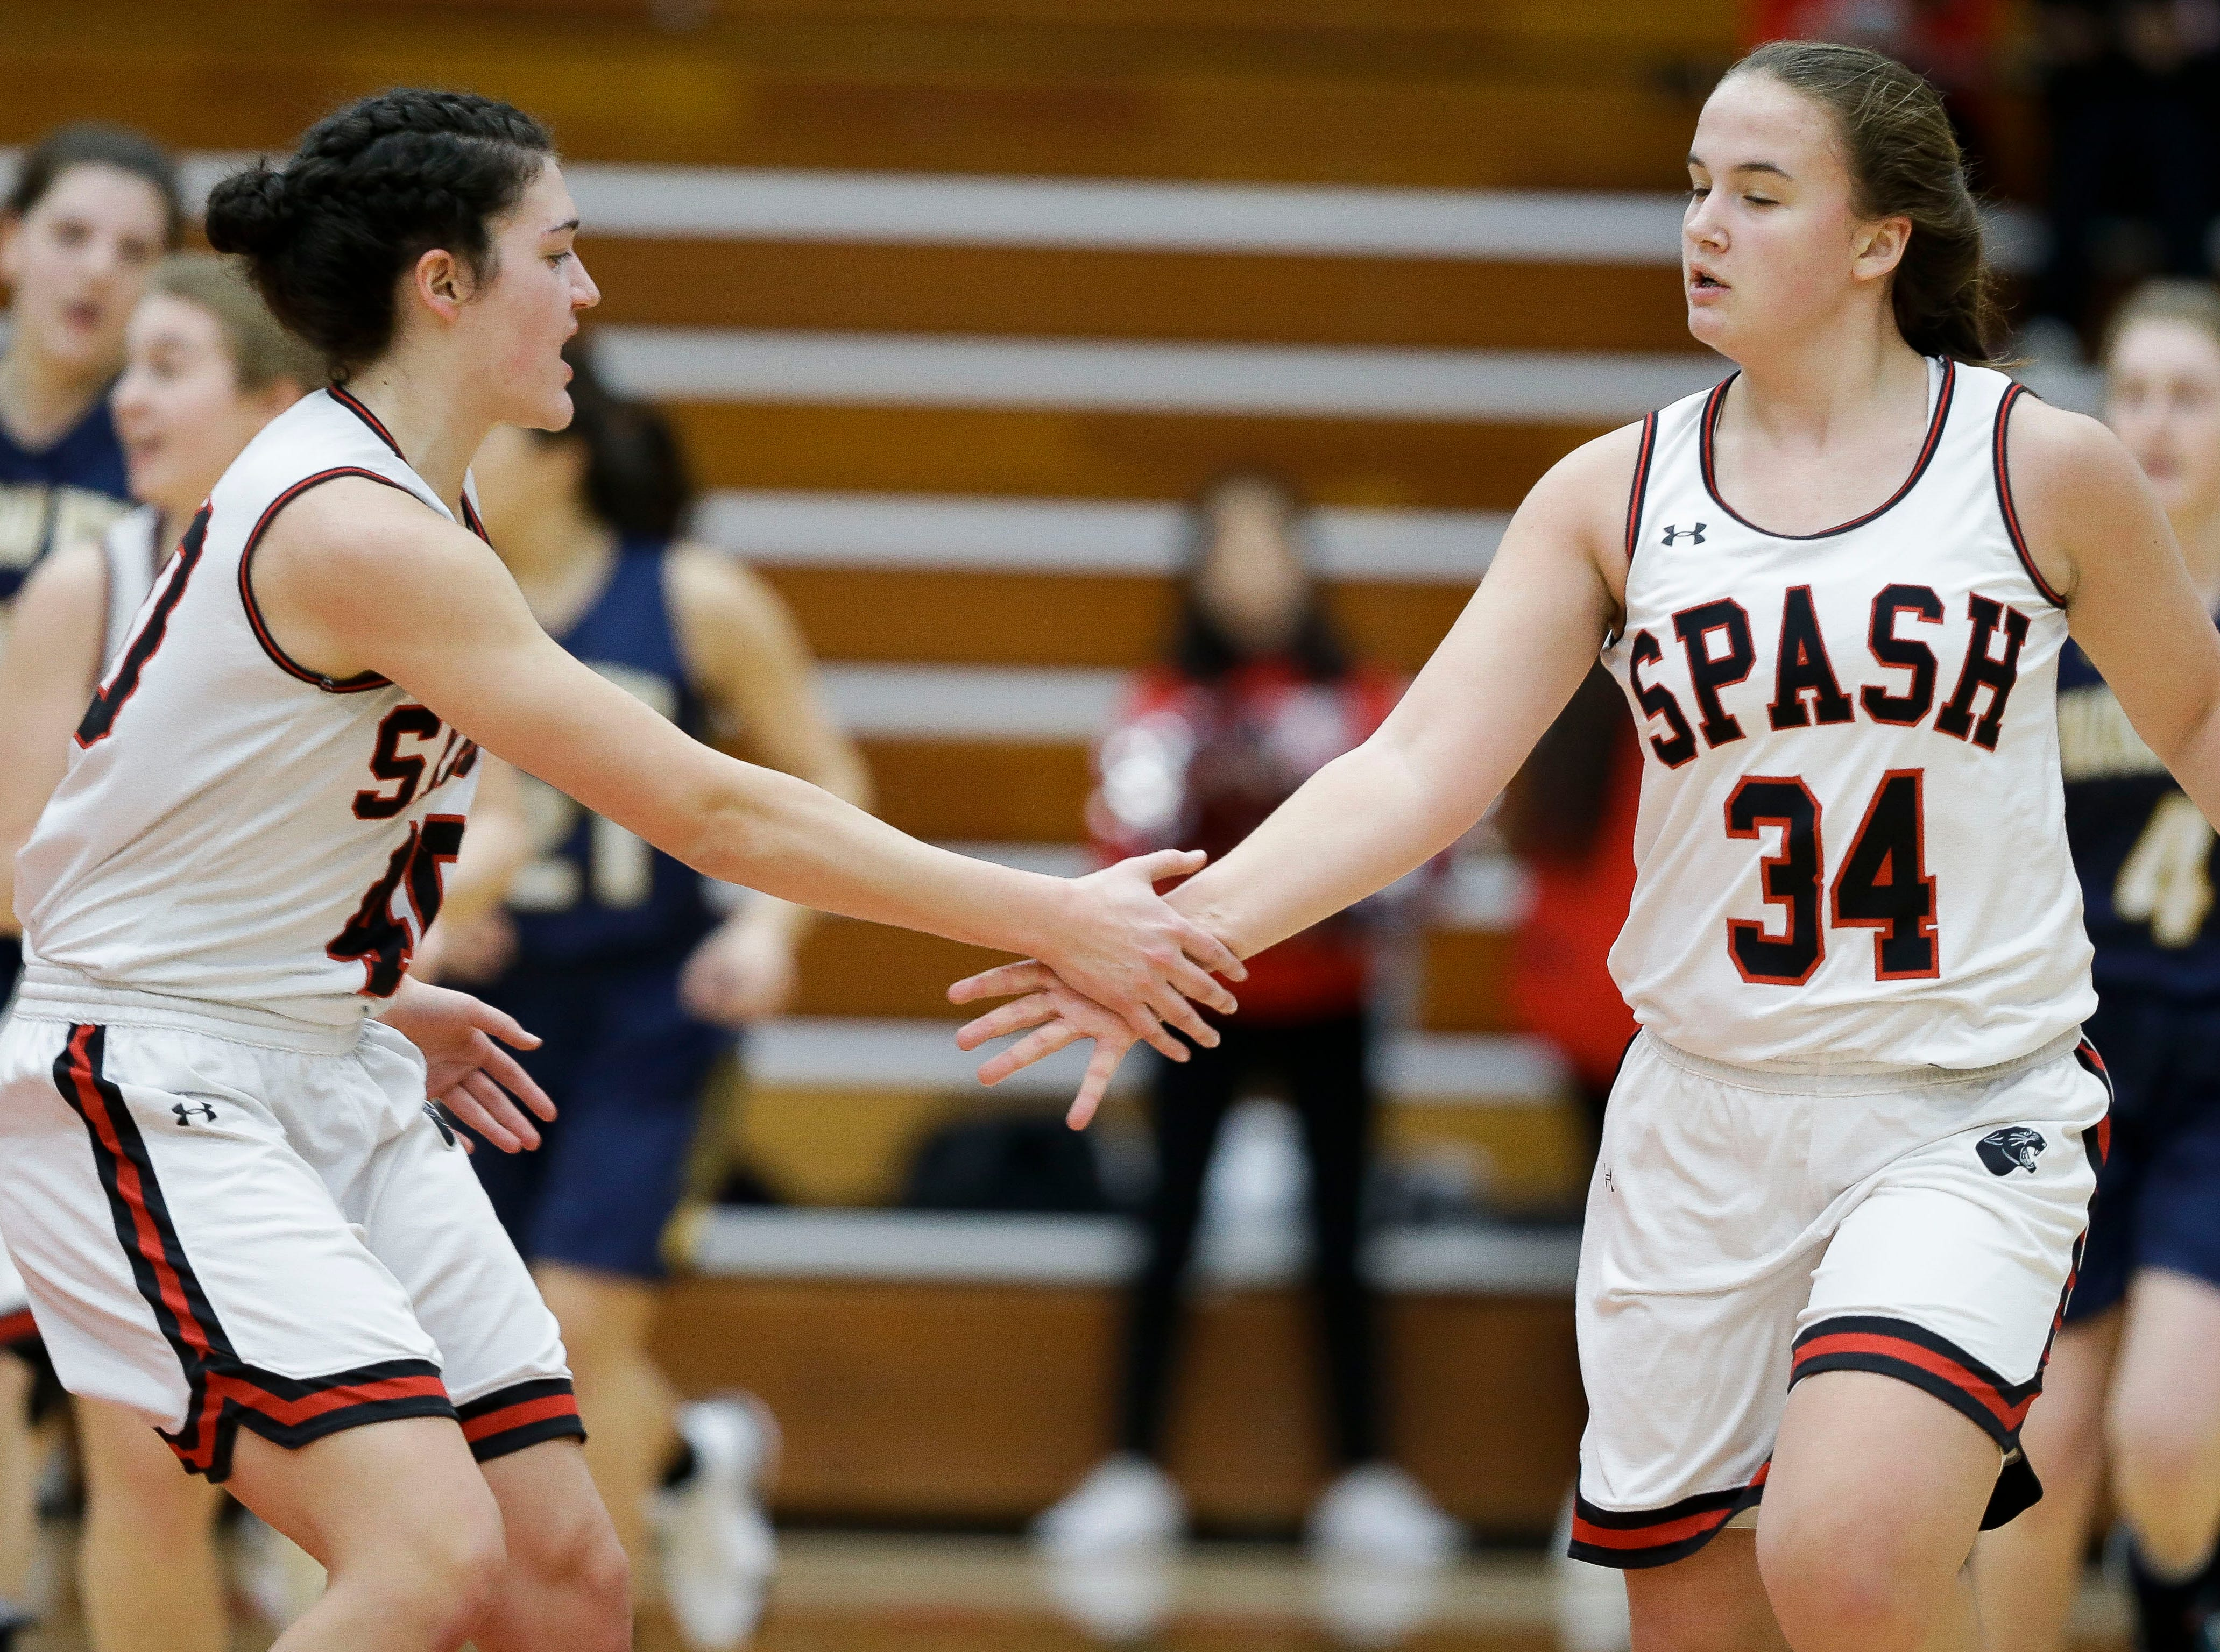 SPASH's Leah Earnest (40) congratulates SPASH's Zoe Fink (34) after a made 3-pointer against Wausau West on Thursday, February 14, 2019, at SPASH in Stevens Point, Wis.Tork Mason/USA TODAY NETWORK-Wisconsin